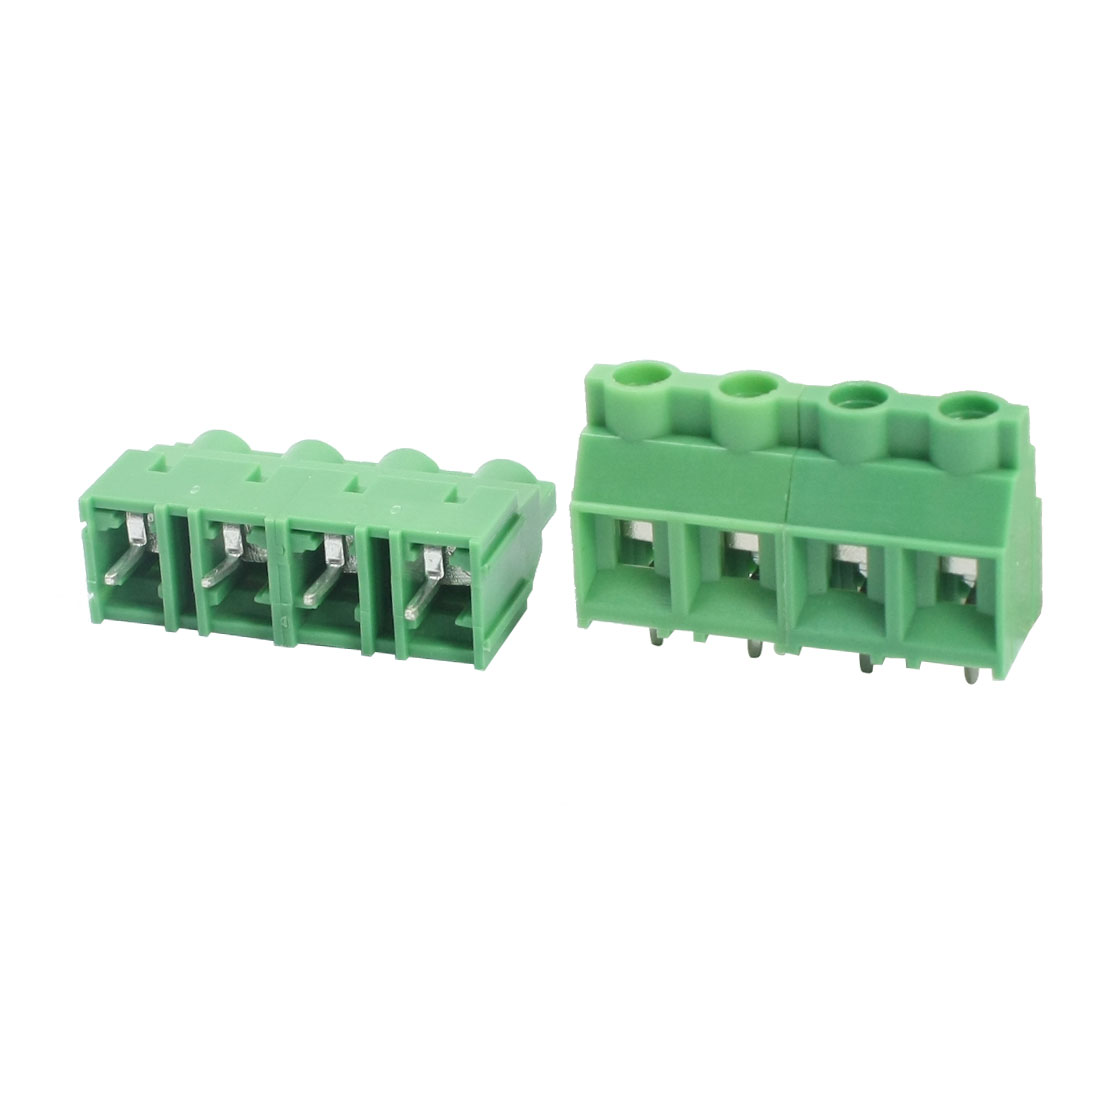 2Pcs KF950 300V 30A 9.5mm Pitch 4-Pin Straight PCB Mounting Screw Terminal Block Connector